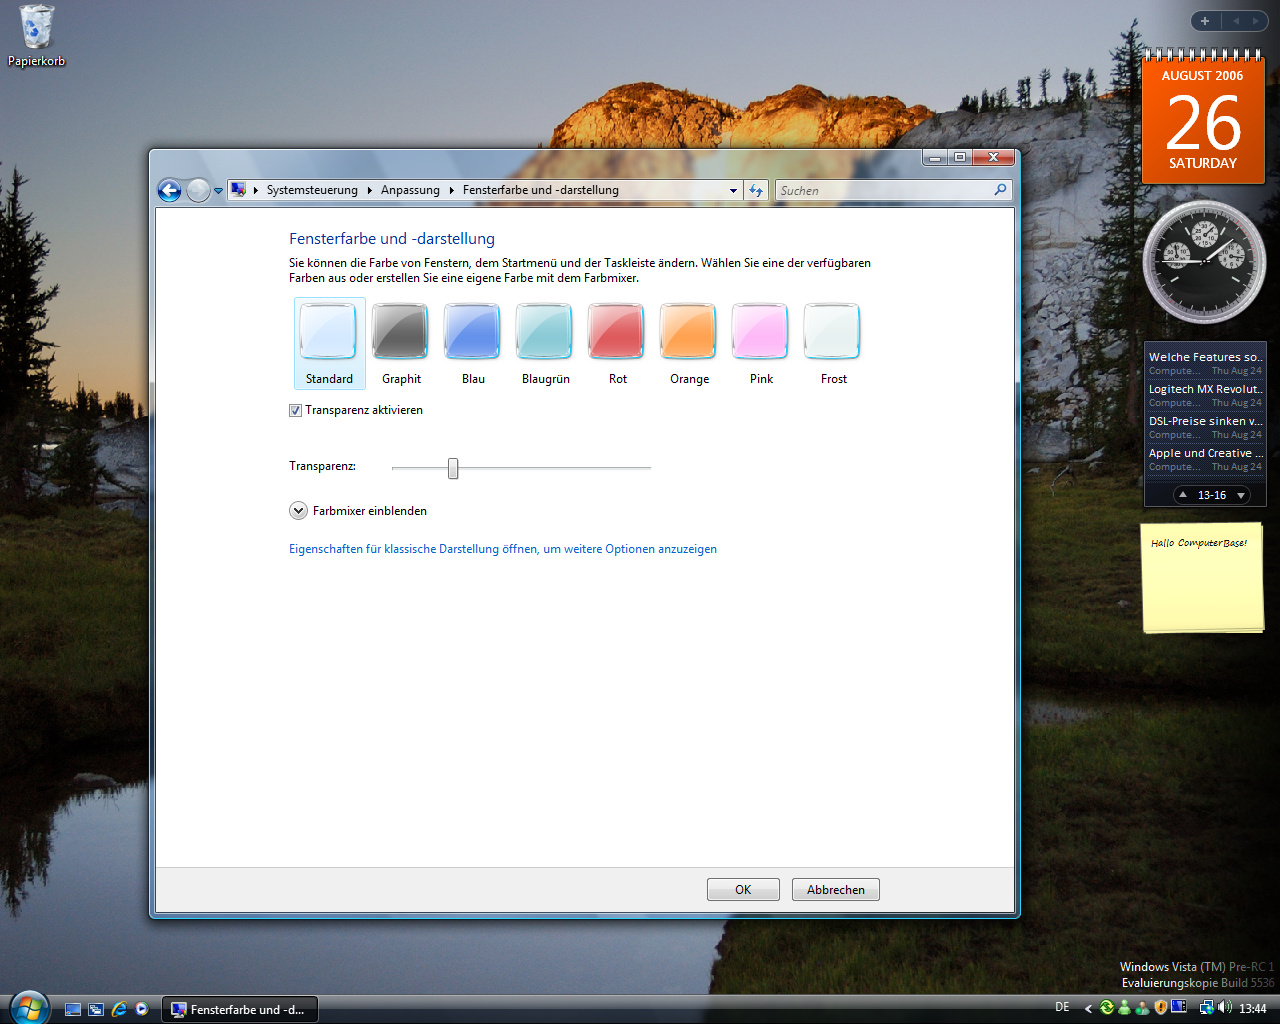 Windows Vista Build 5536 - Anpassung